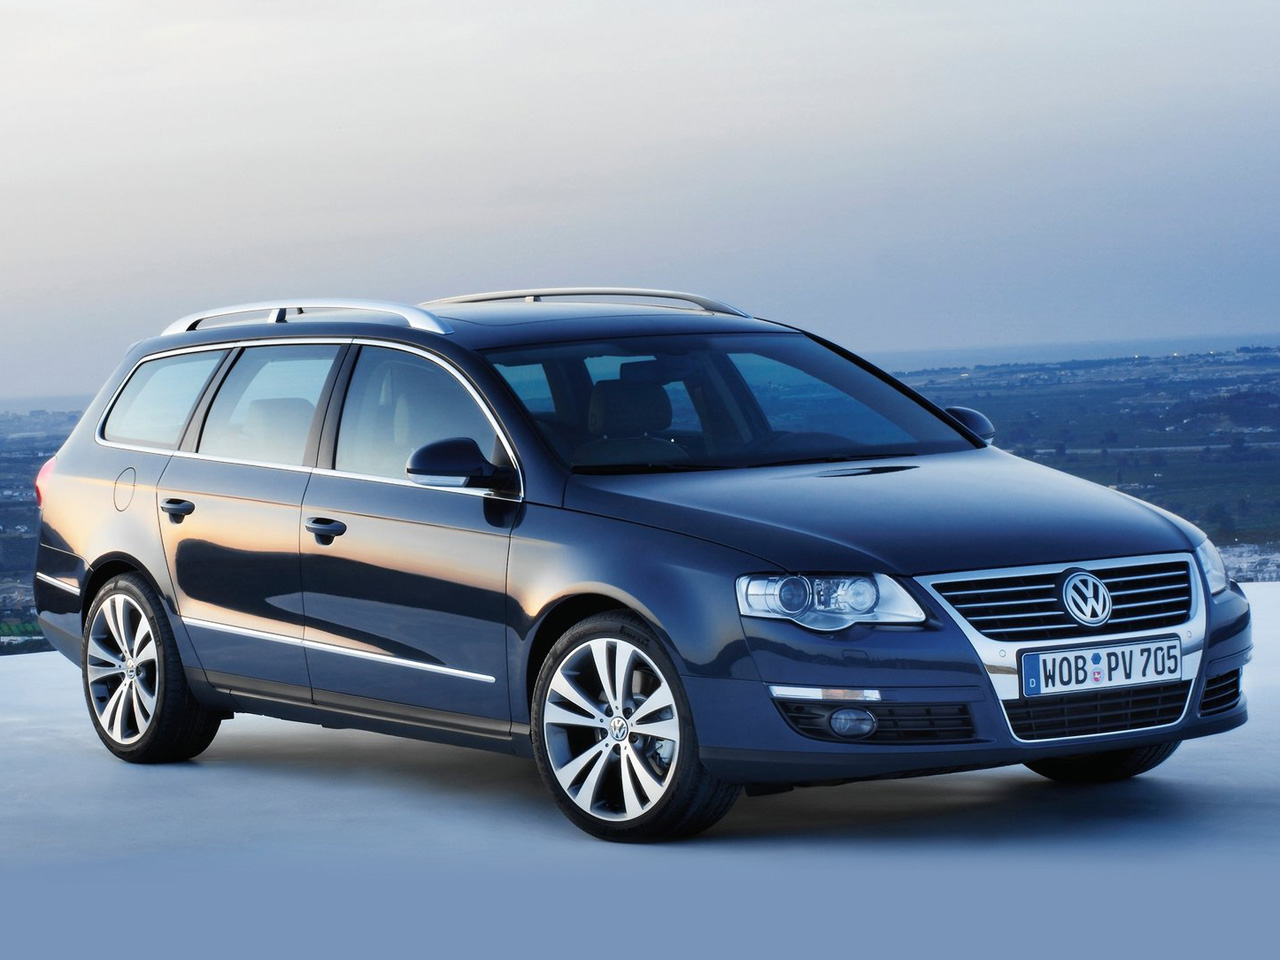 2014 volkswagen passat variant b6 pictures. Black Bedroom Furniture Sets. Home Design Ideas